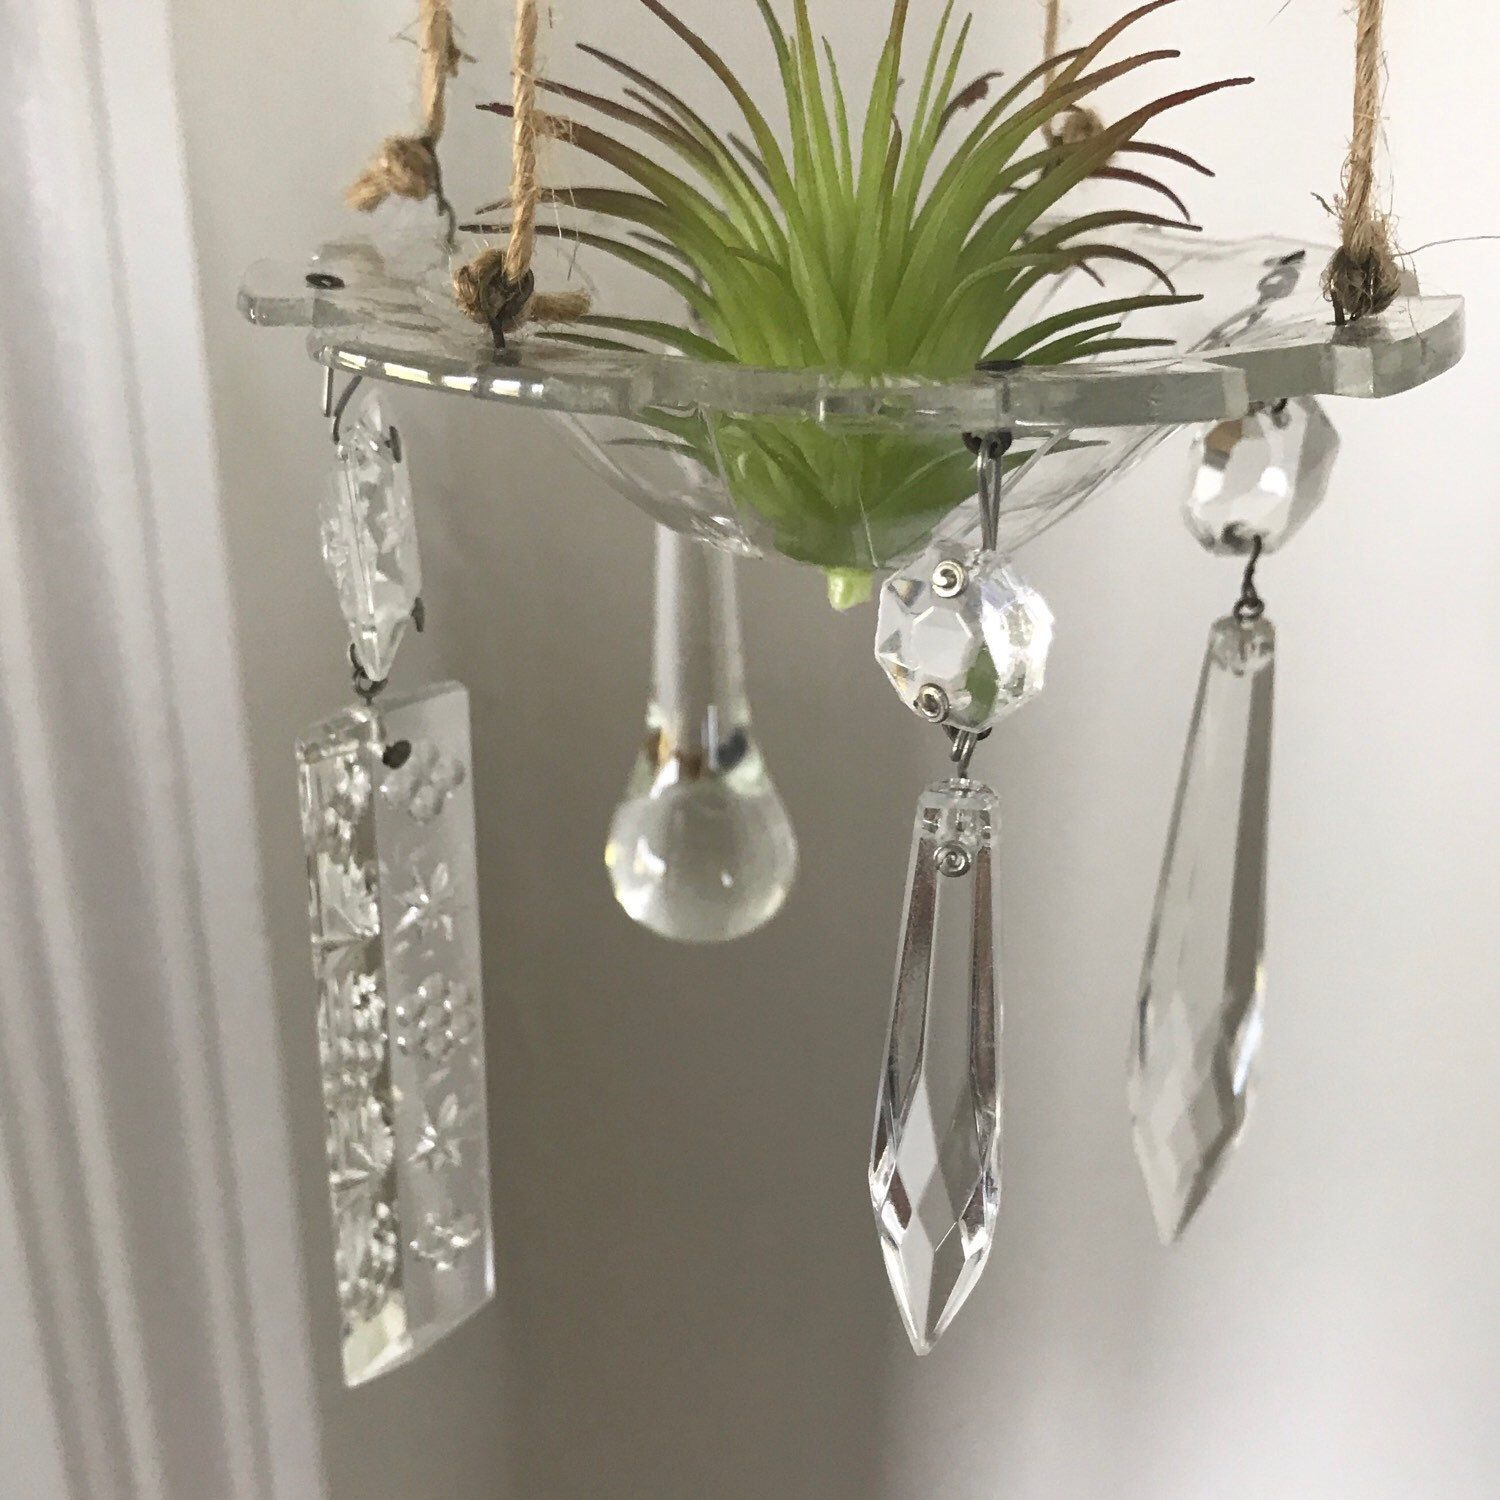 New item added to the shop today vintage chandelier air plant new item added to the shop today vintage chandelier air plant holders aloadofball Images